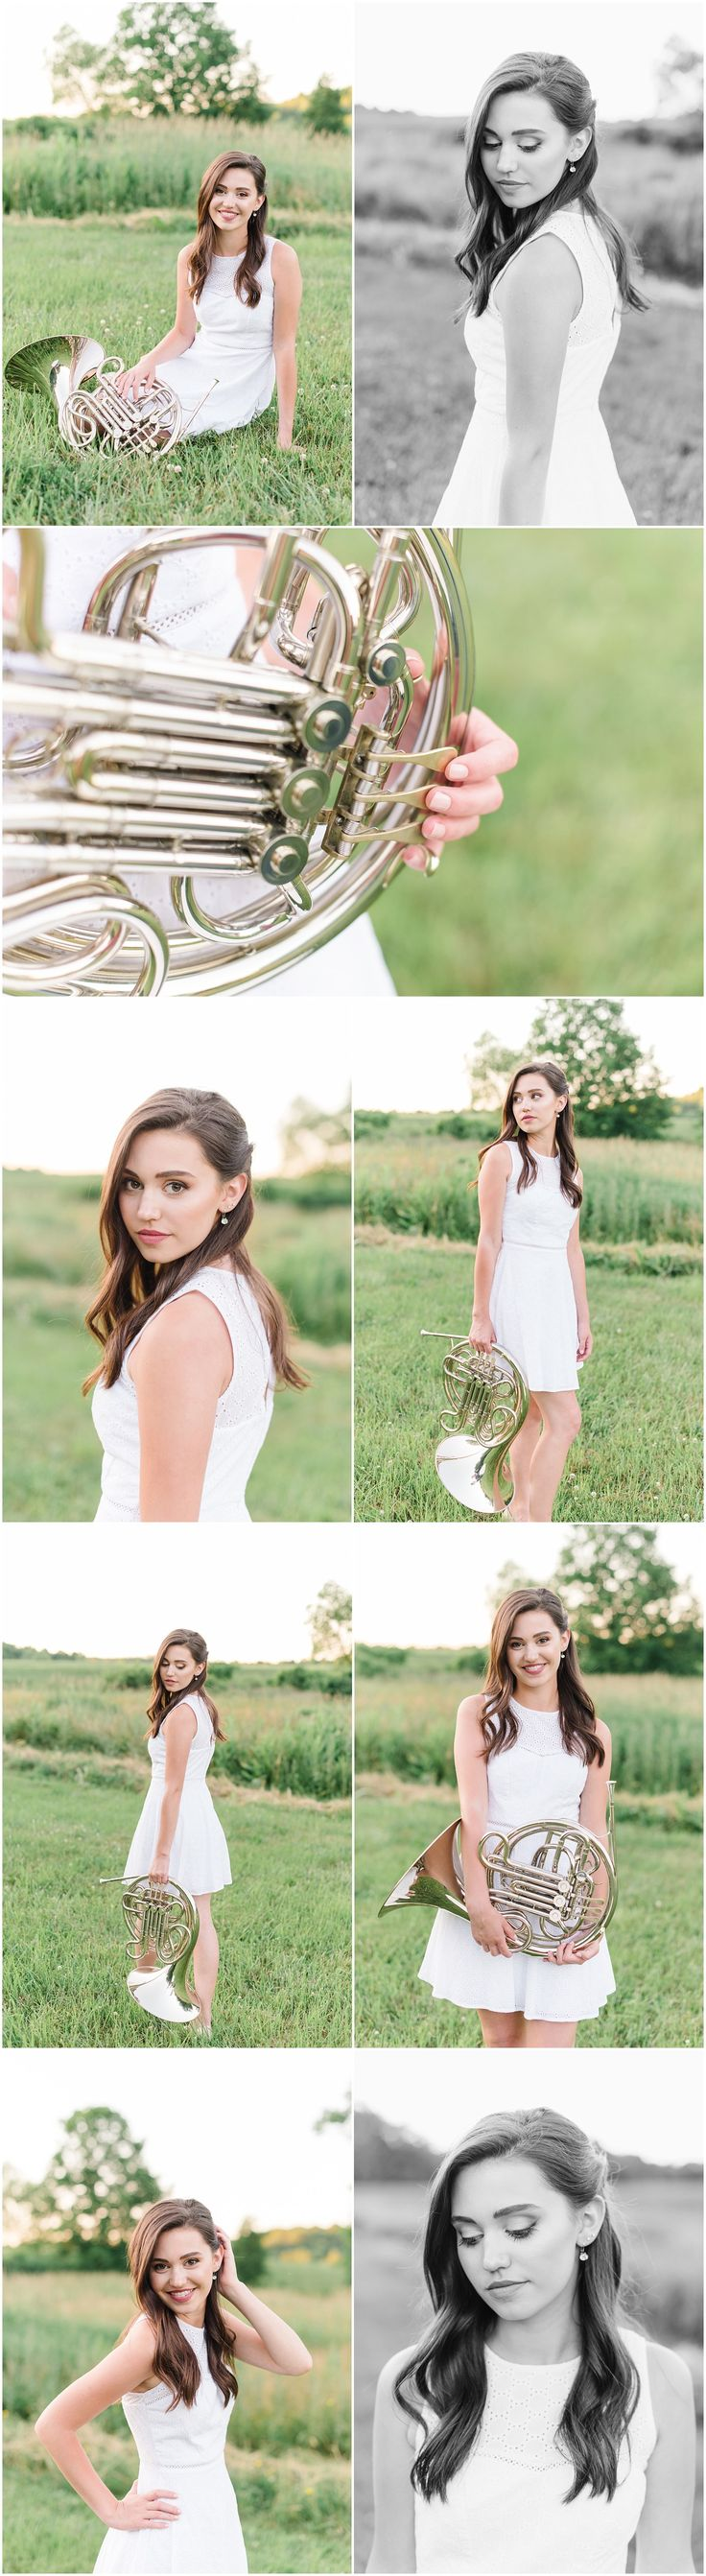 Modern Senior Pictures, French Horn – Wadsworth, OH Senior Photographer, Brittany Marie Photography | www.brittanymariephoto.com